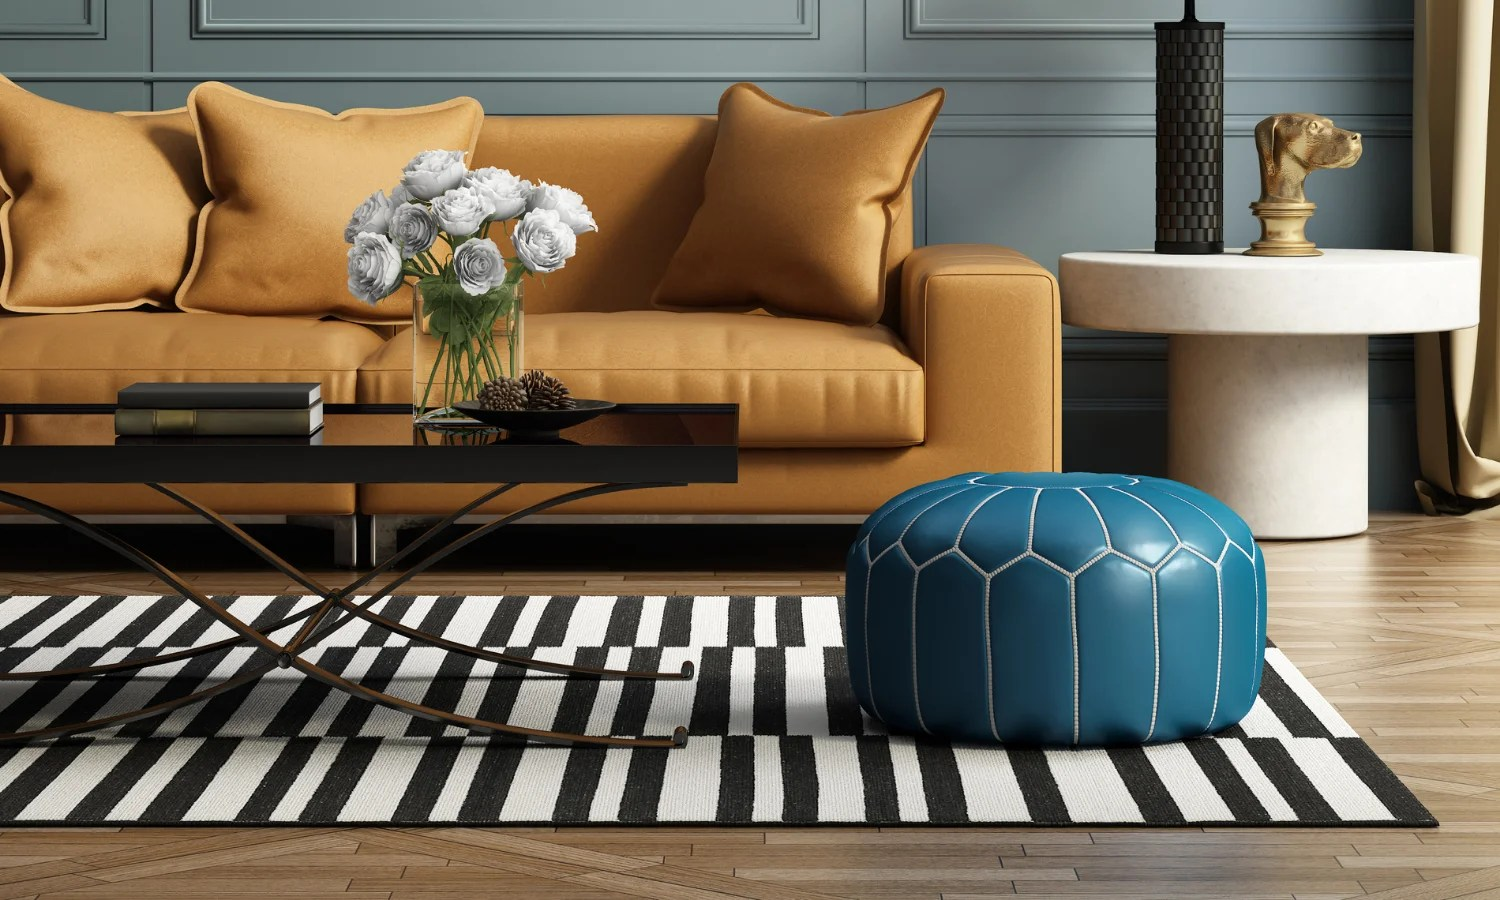 Tips For Decorating The Living Room With Rugs